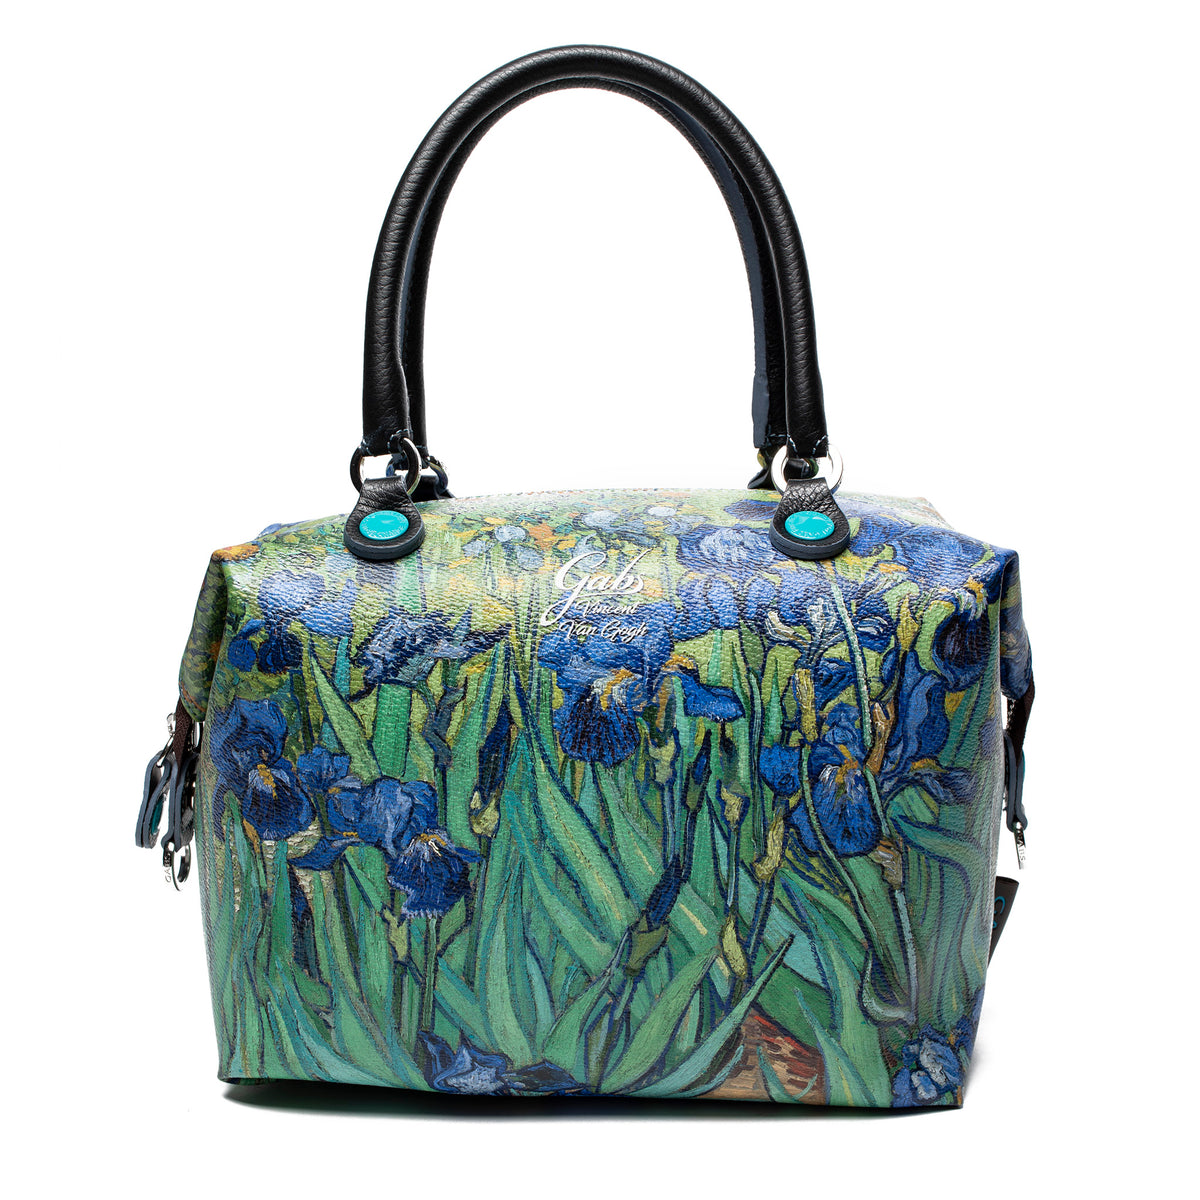 Small Convertible Hand Bag featuring Van Gogh's <i>Irises</i> by Gabs Italy